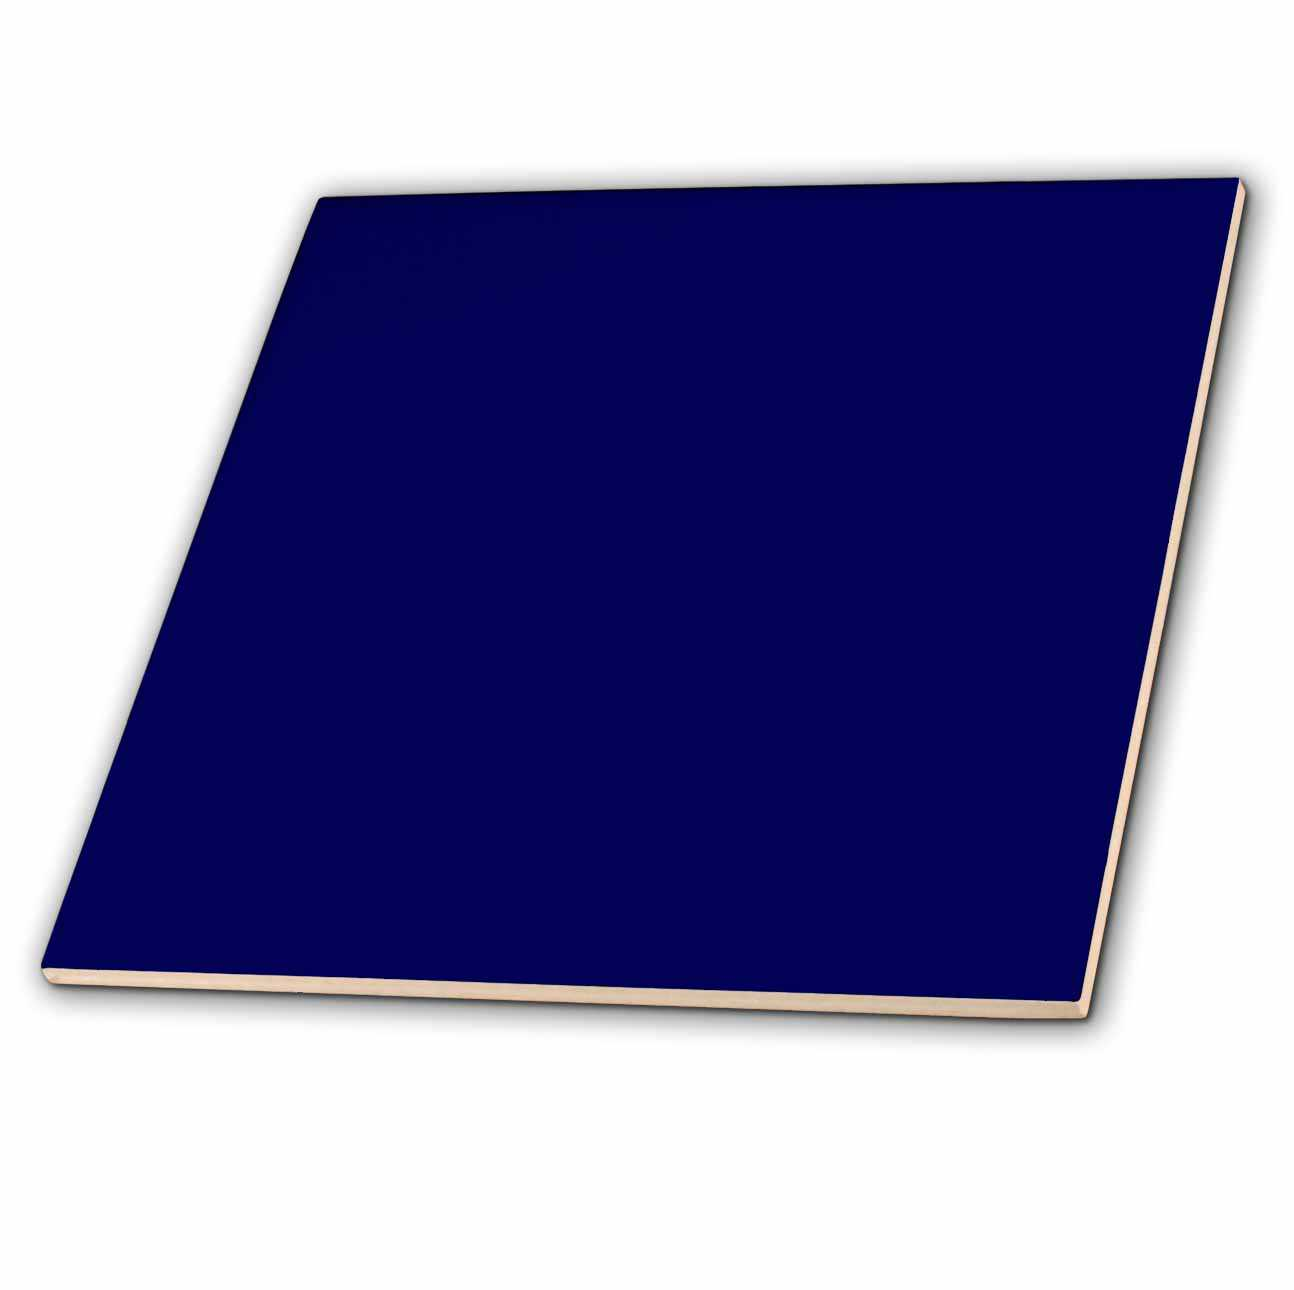 3dRose Navy Blue - Ceramic Tile, 12-inch